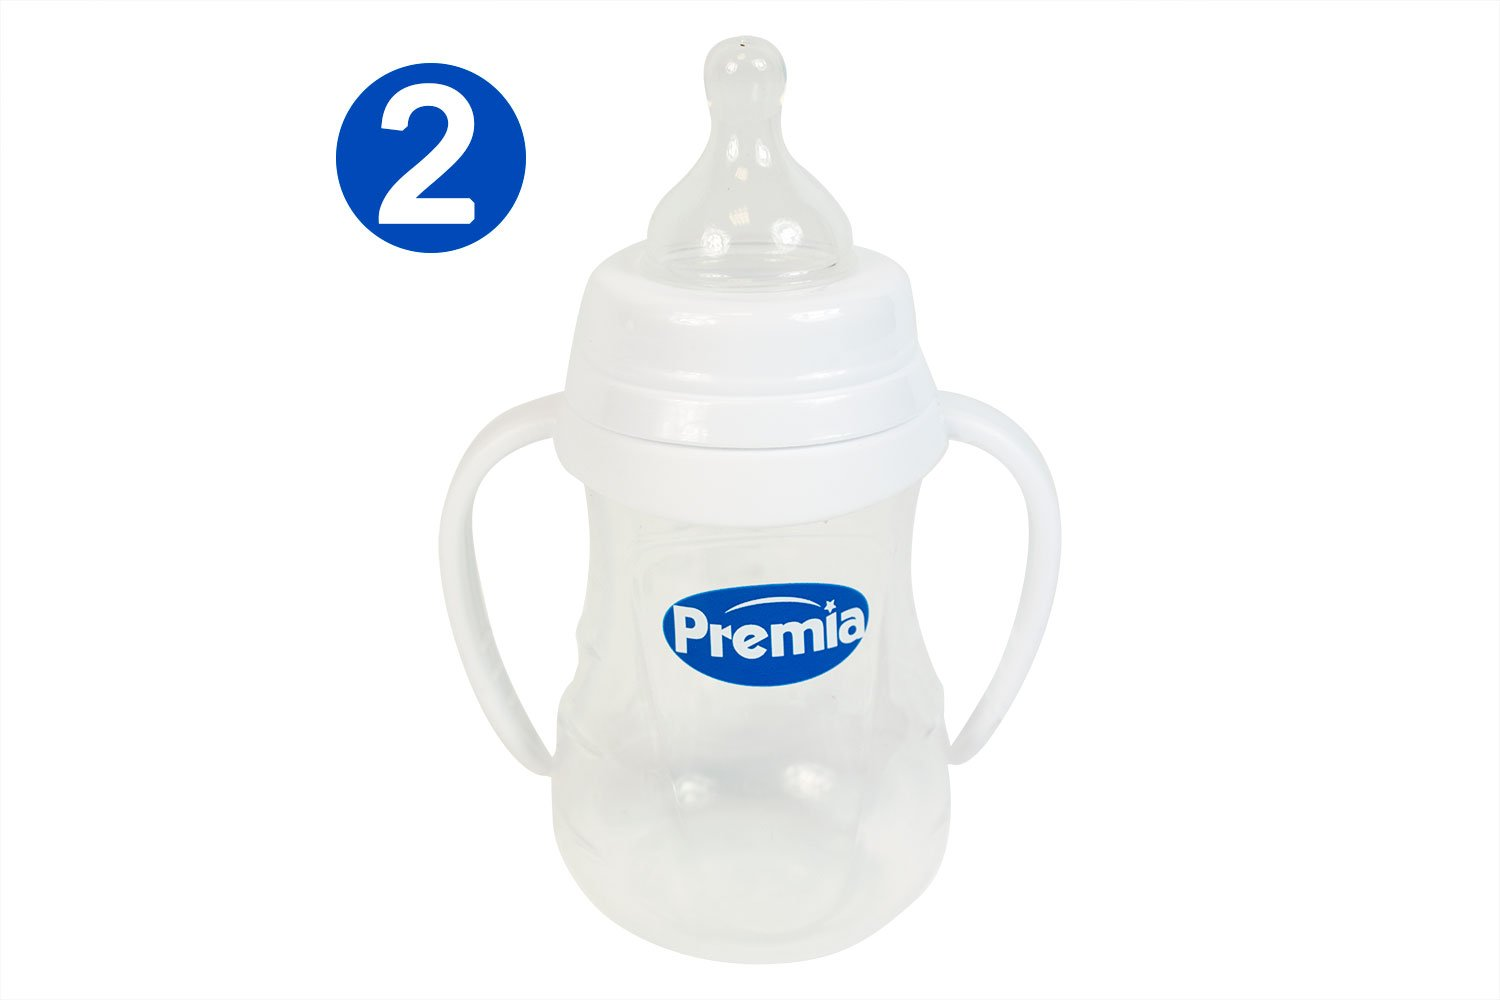 Beanbone 5 Stage Baby Feeding Bottles Transition Feed Milk